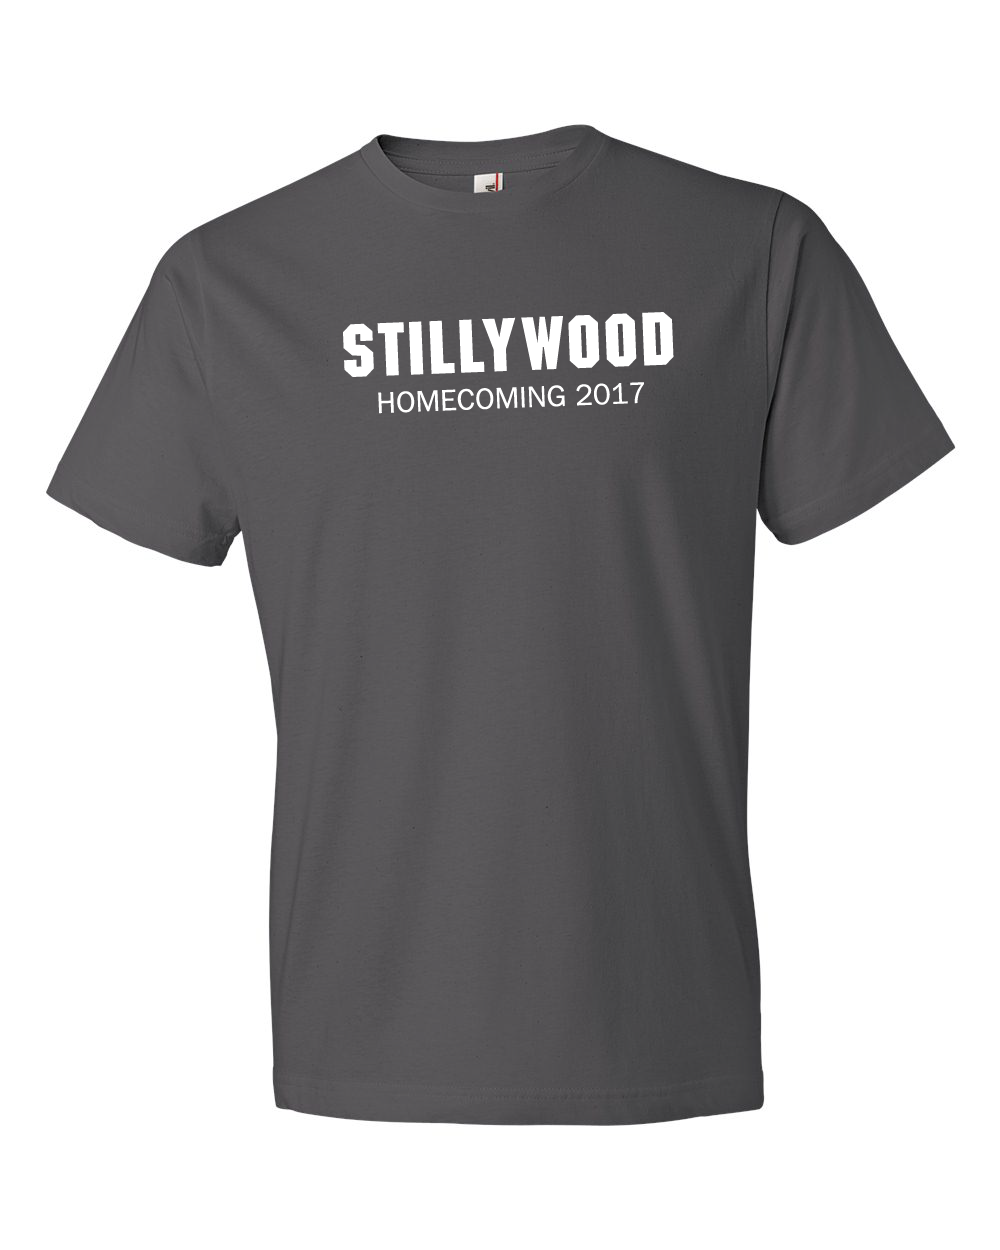 Hoco 2017 - Stillywood Tee